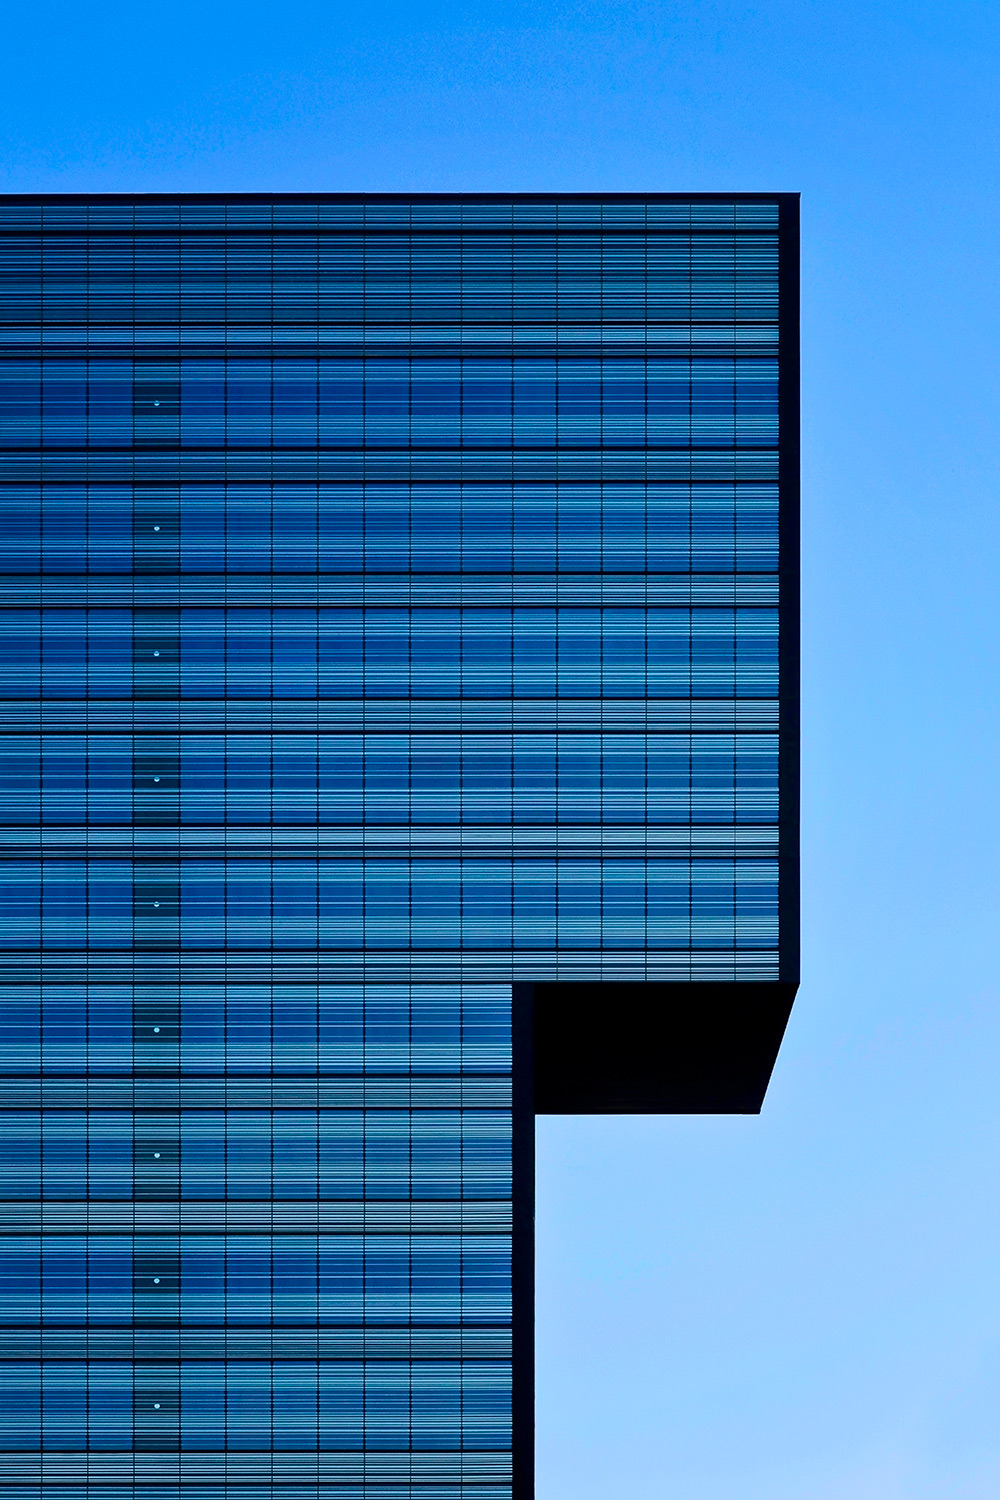 Vodafone HQ Building   |  Dominique Perrault  |  Barcelona